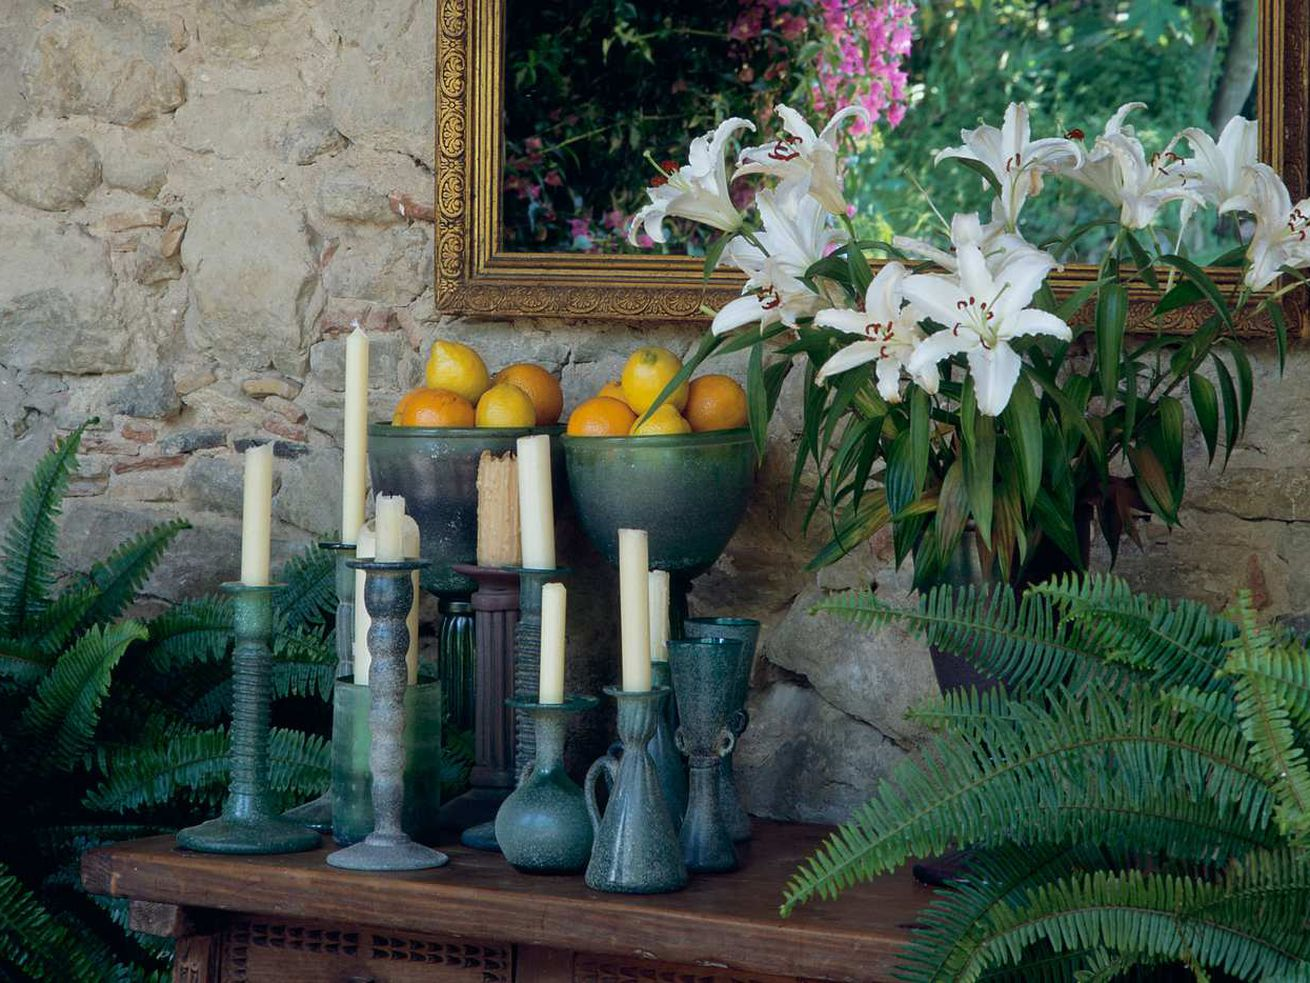 Blue candlestick holders with white candles on a wooden table, next to a vase of lilies.